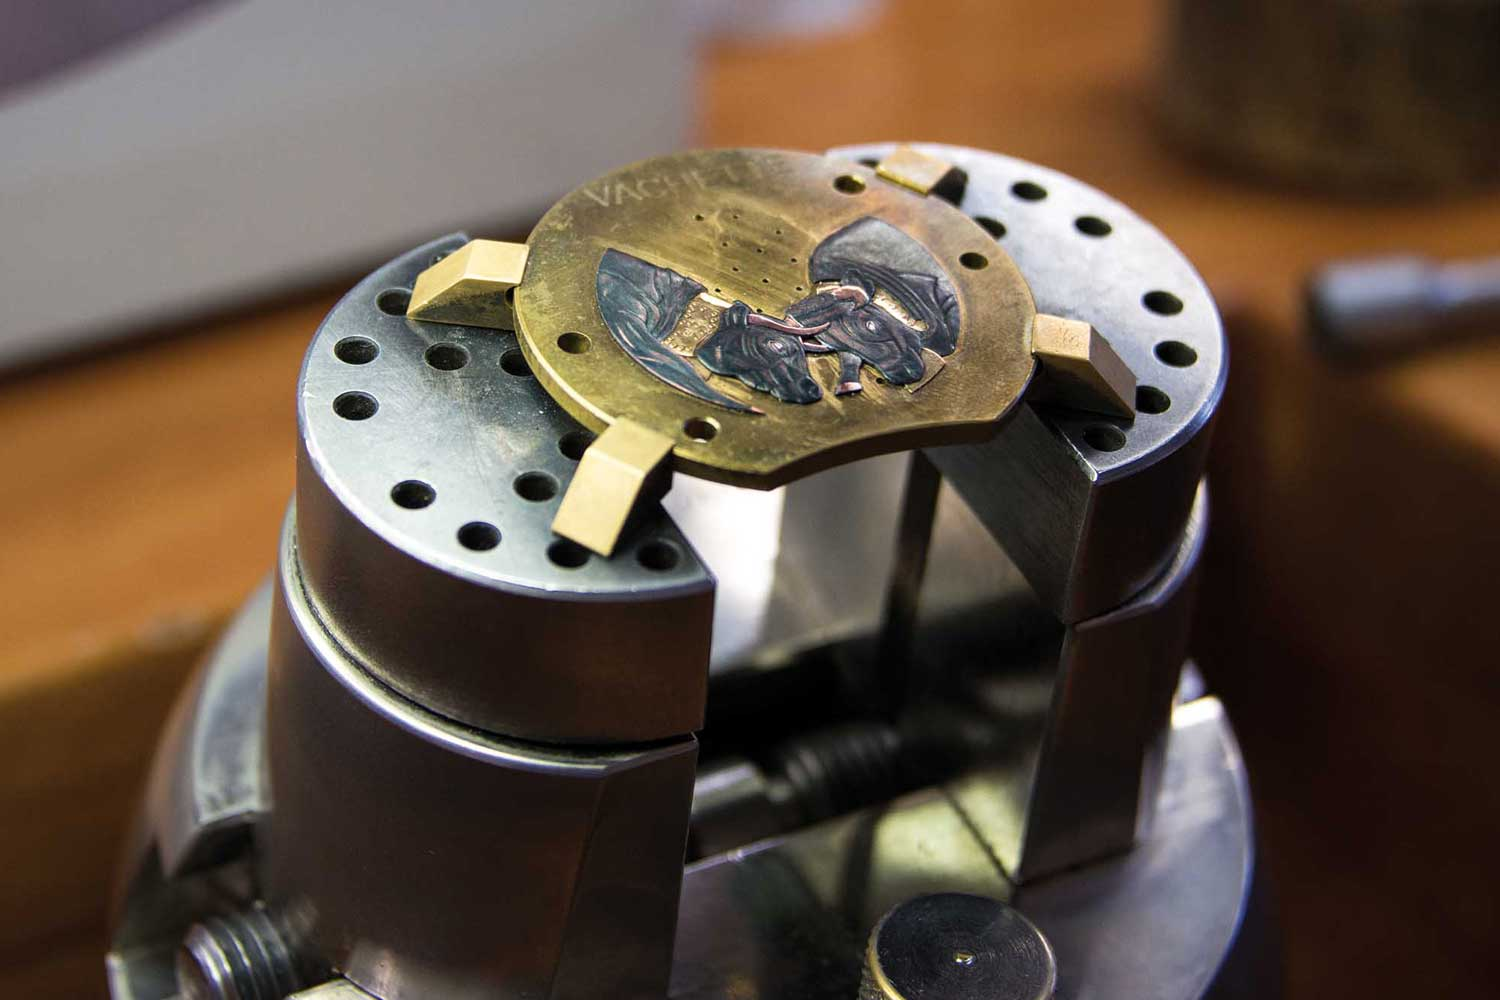 The making of the Blancpain Métiers d'Art Shakudo 'Battle of the QueenCows'